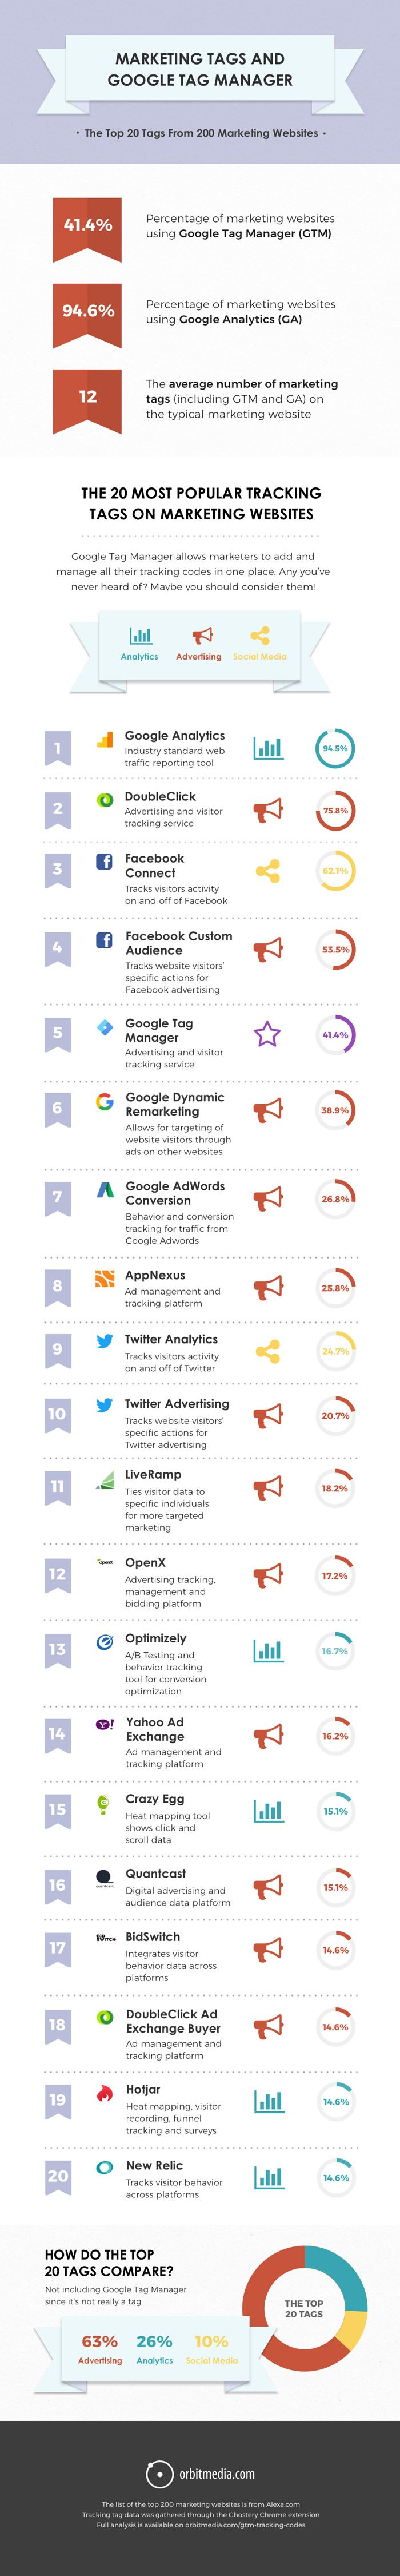 Who uses Google Tag Manager? What Are They Tracking? [INFOGRAPHIC]